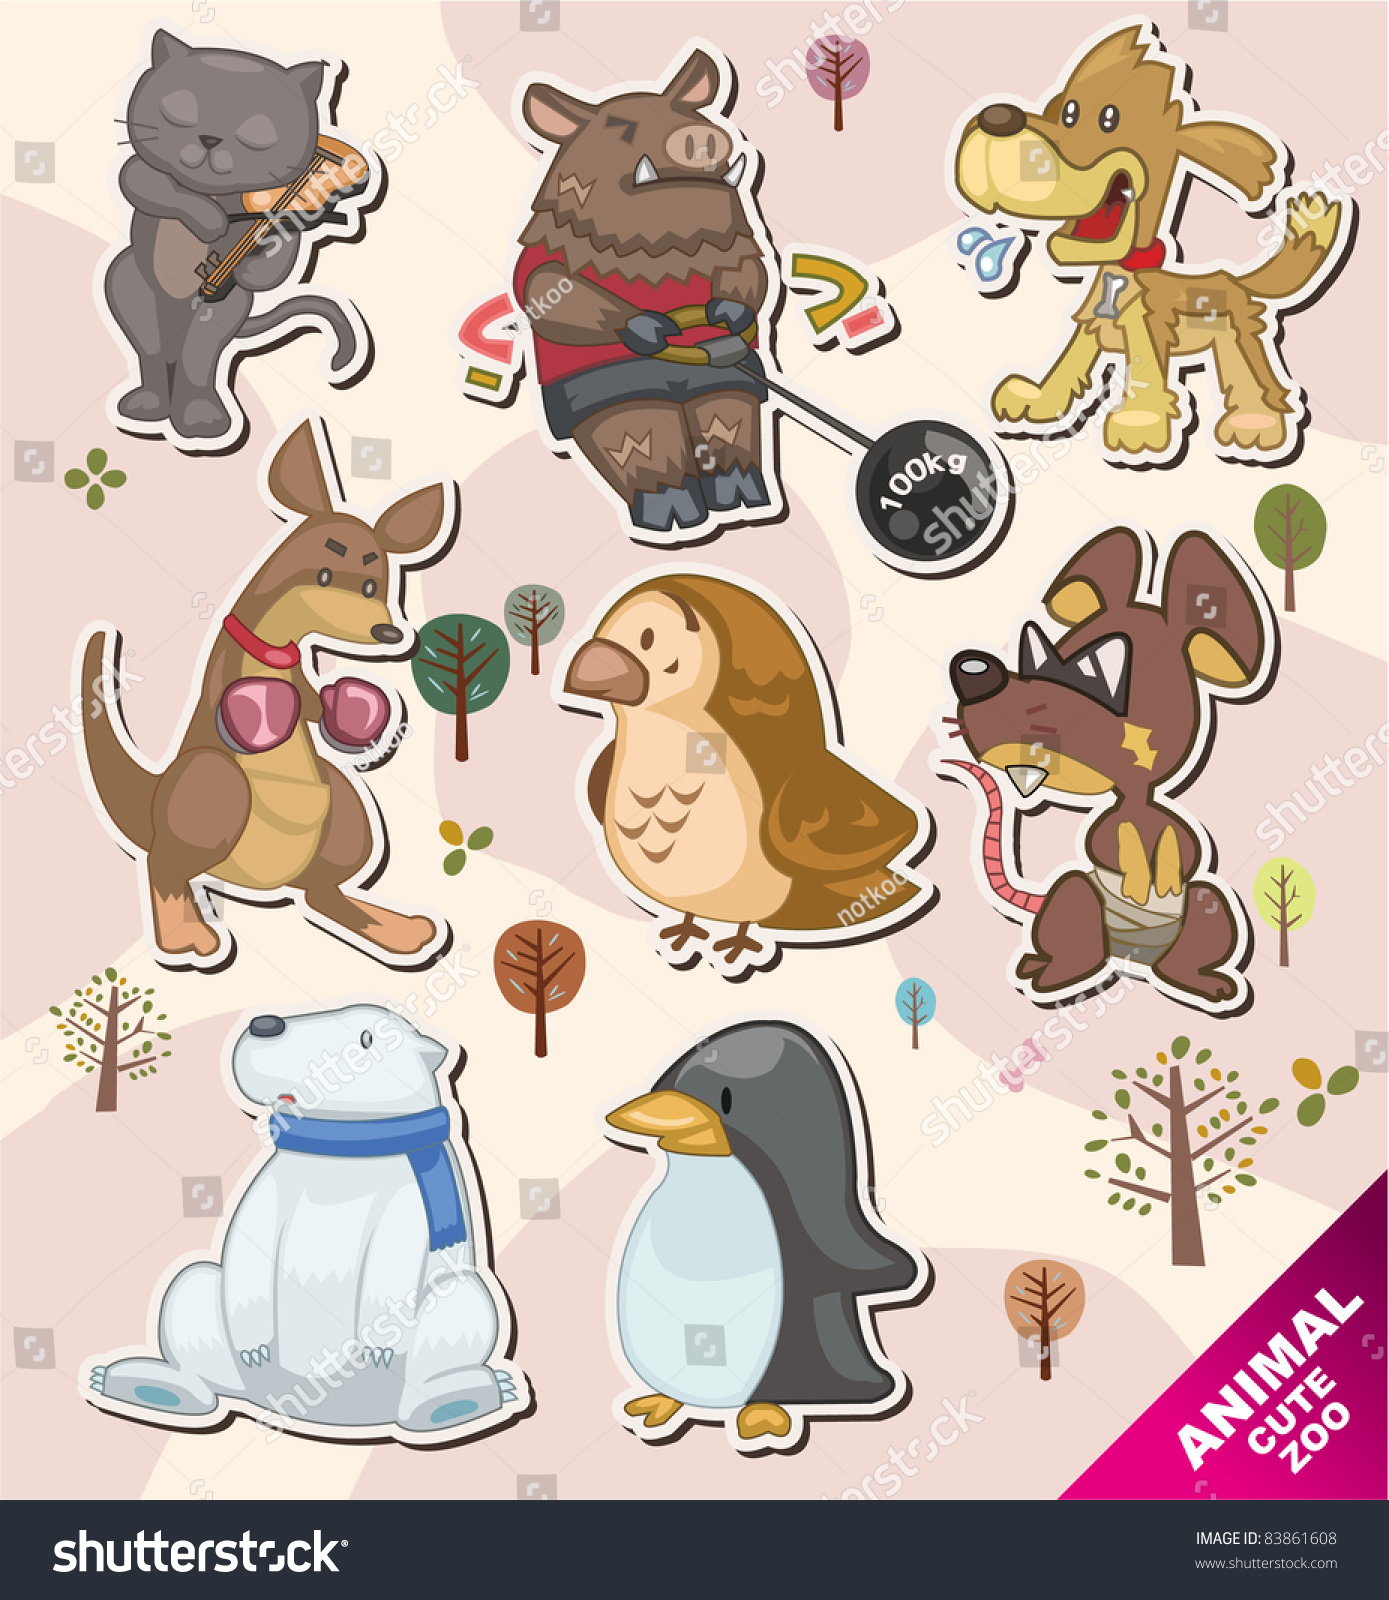 cartoon animal stickers in -#main